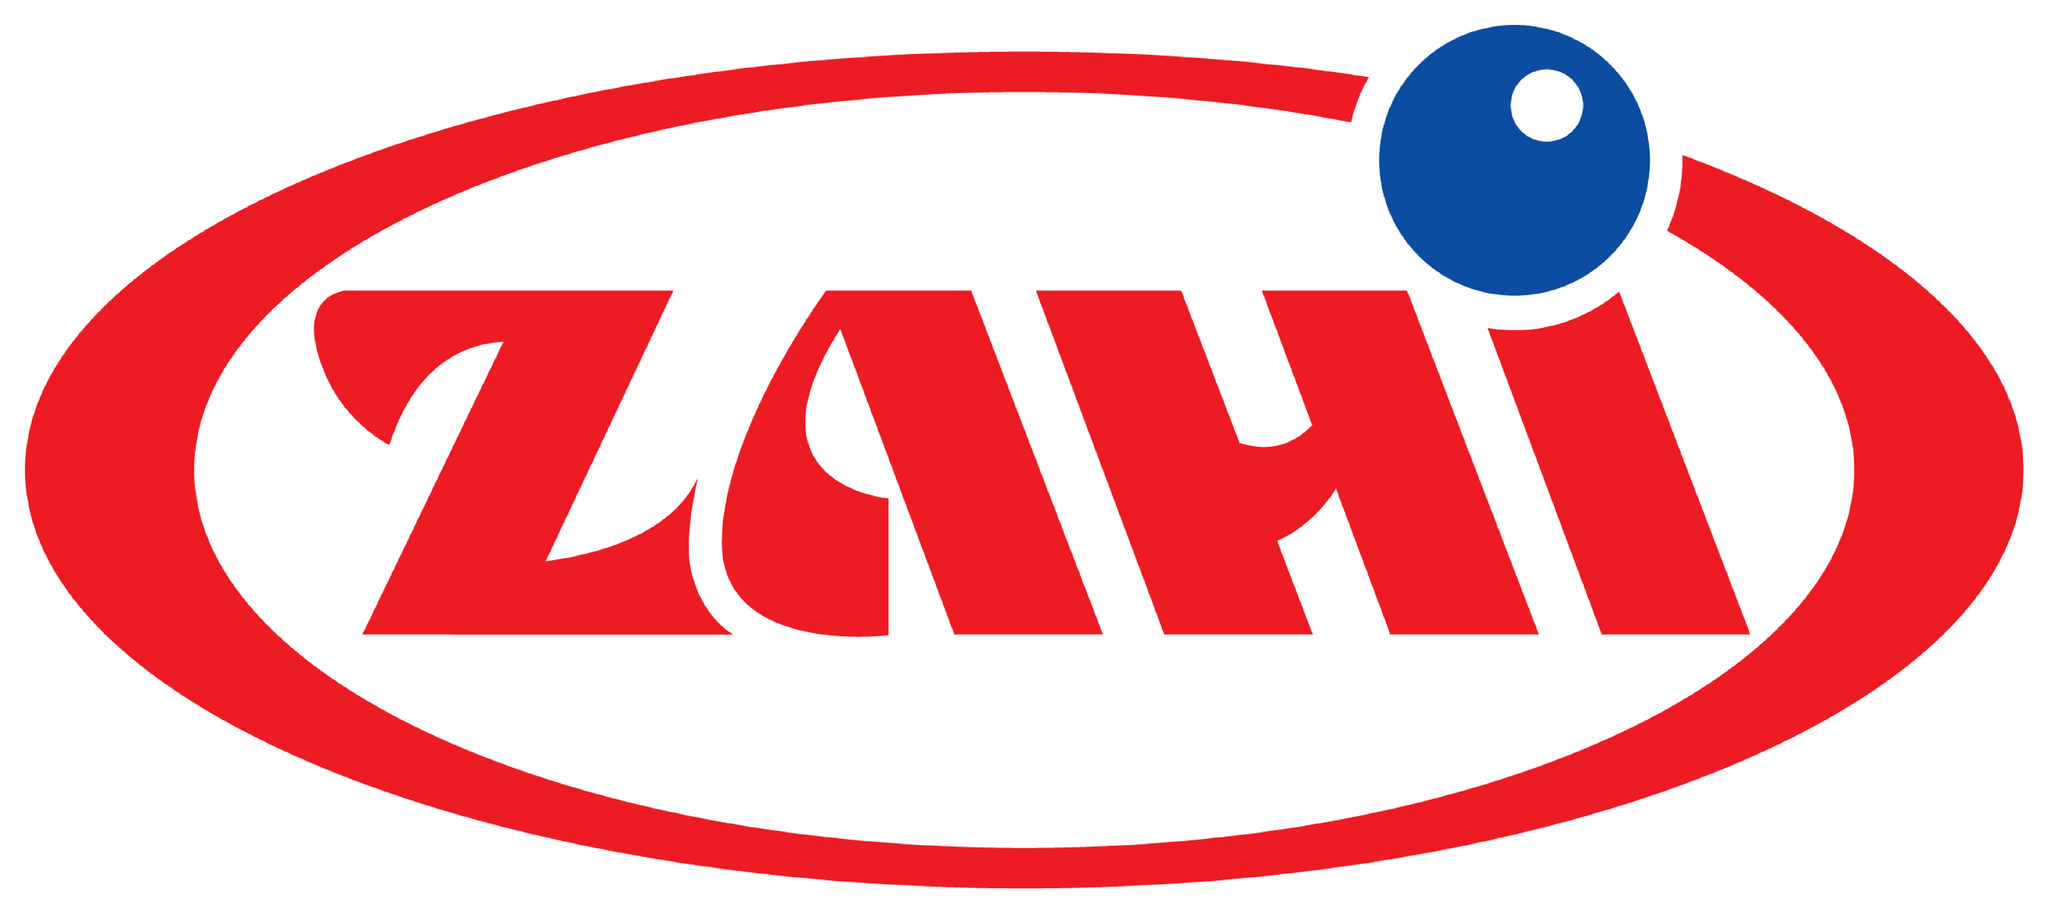 Zahi Co. For Industry and Trading.LTD